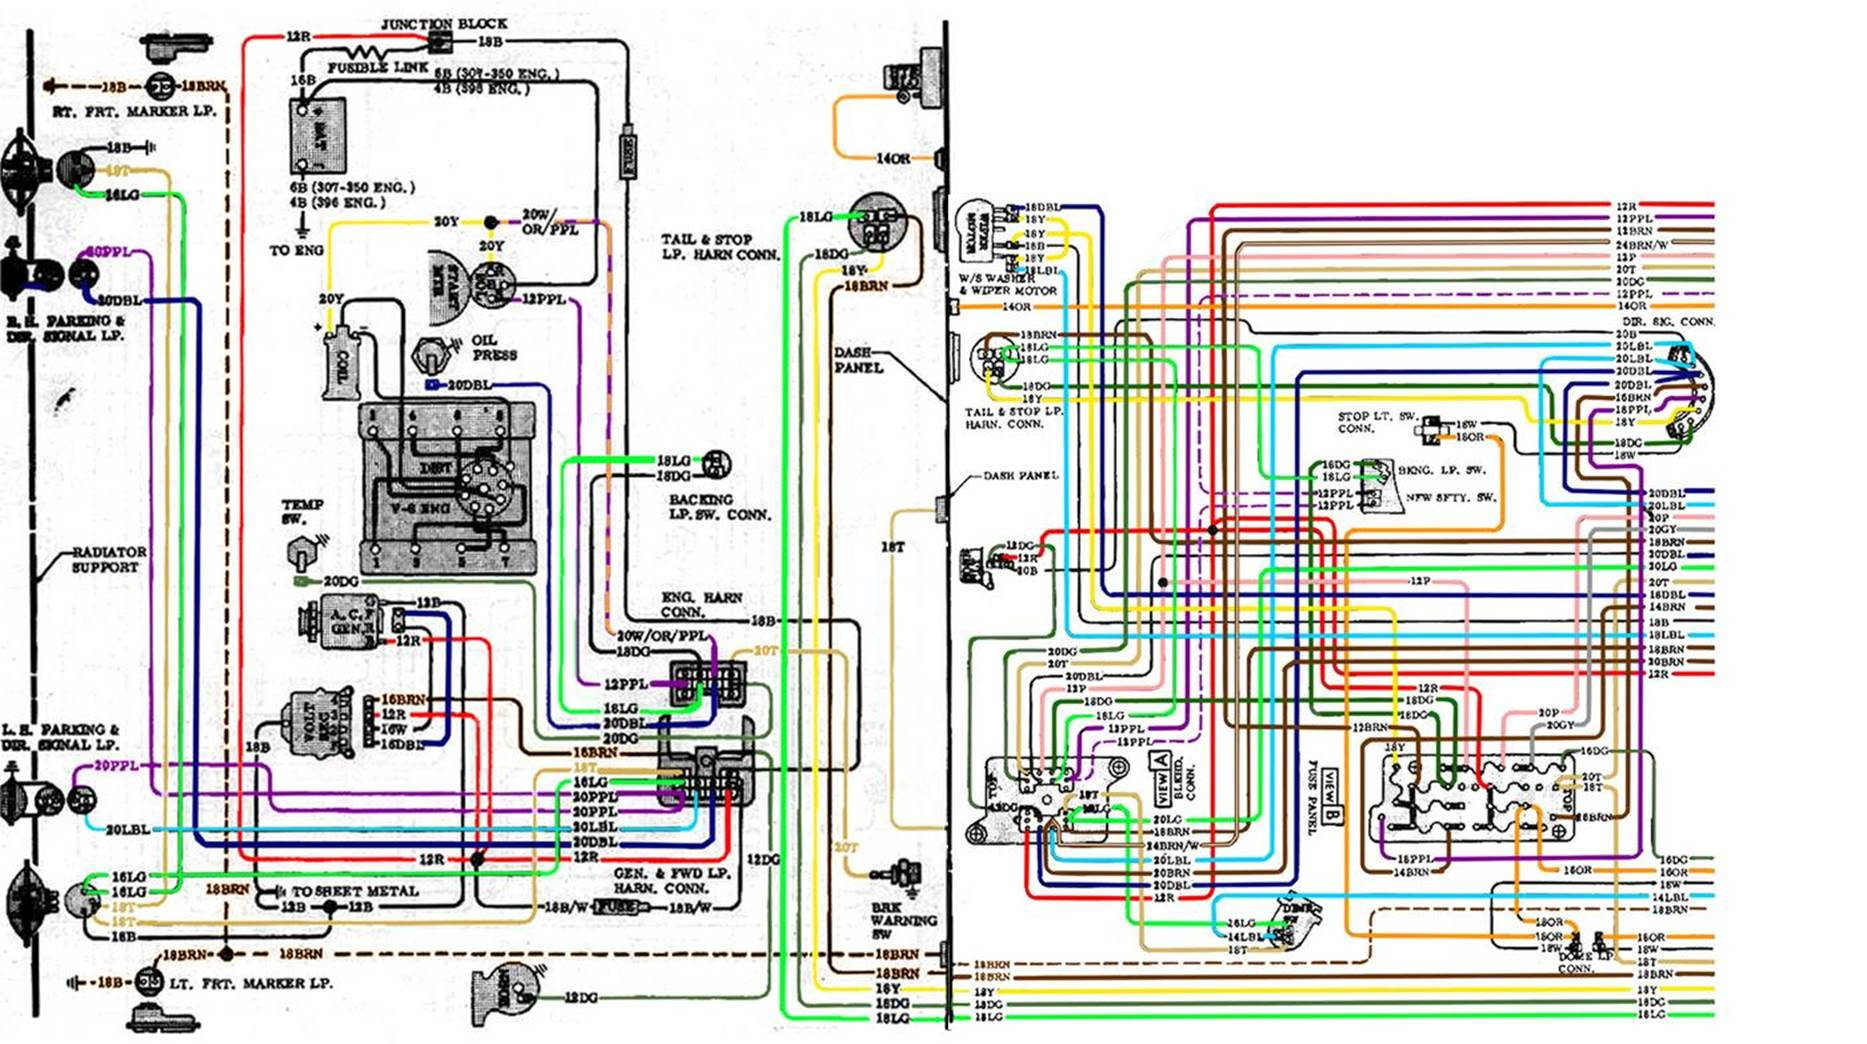 image002 72 c10 wiring harness 67 72 c10 wiring harness \u2022 wiring diagram  at creativeand.co